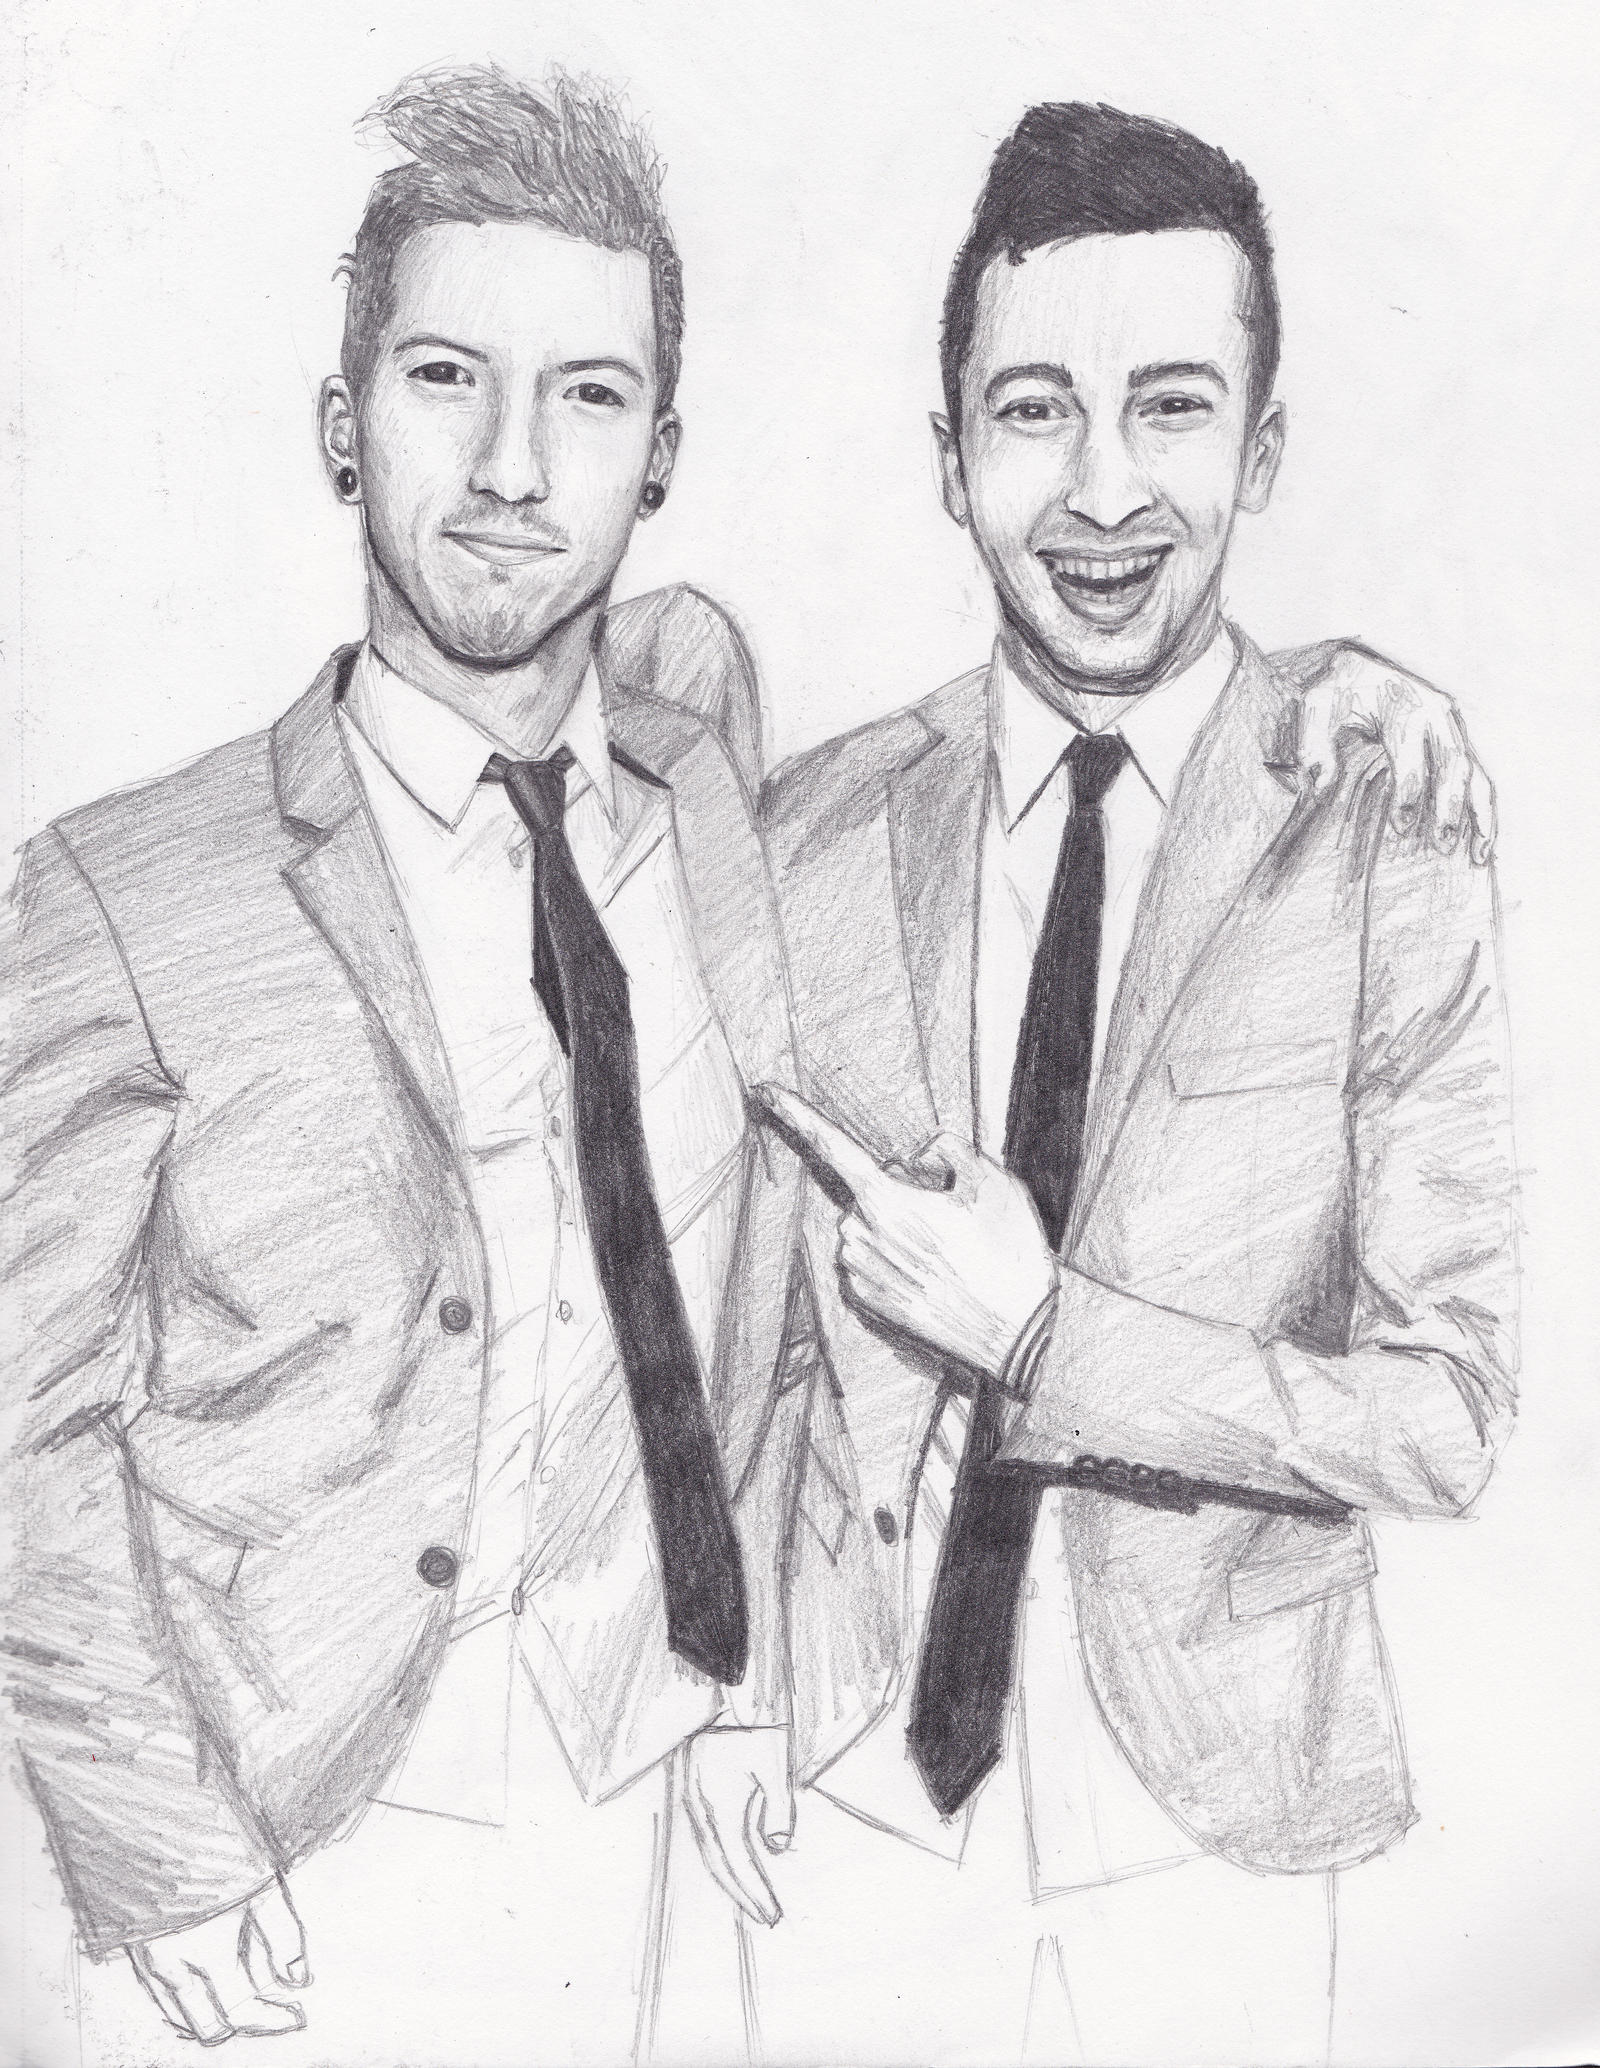 Twenty one pilots at mtv by luckyraindrop on deviantart for Twenty one pilots coloring pages